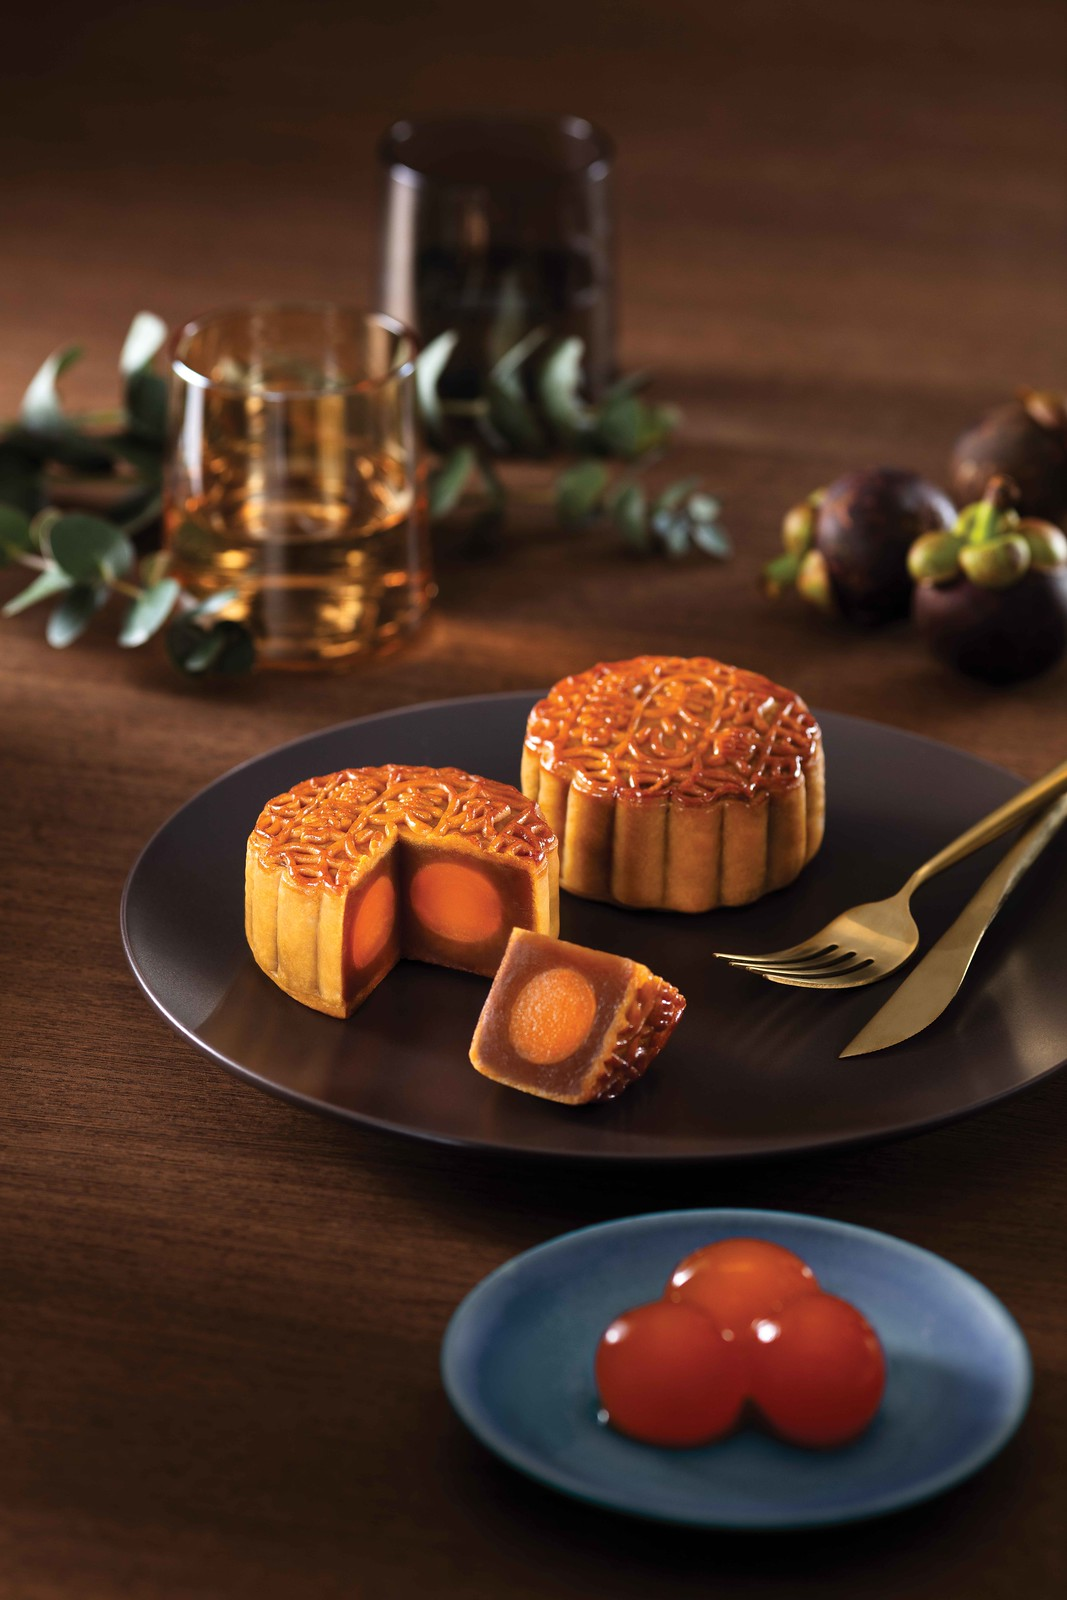 HKMX Signature Traditional Mooncakes